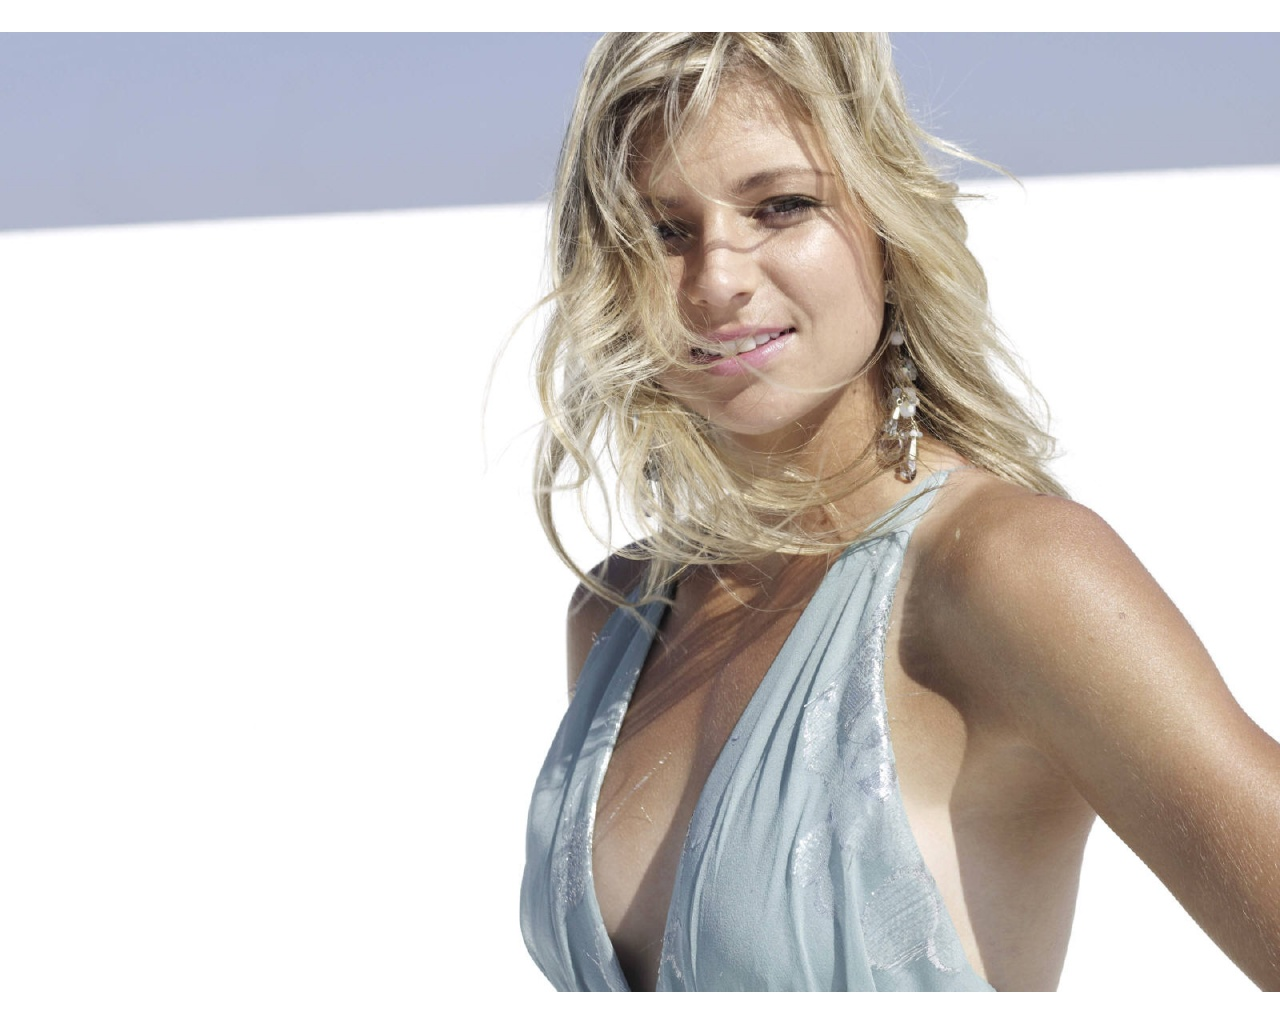 maria_kirilenko_wallpaper_3-1280x1024